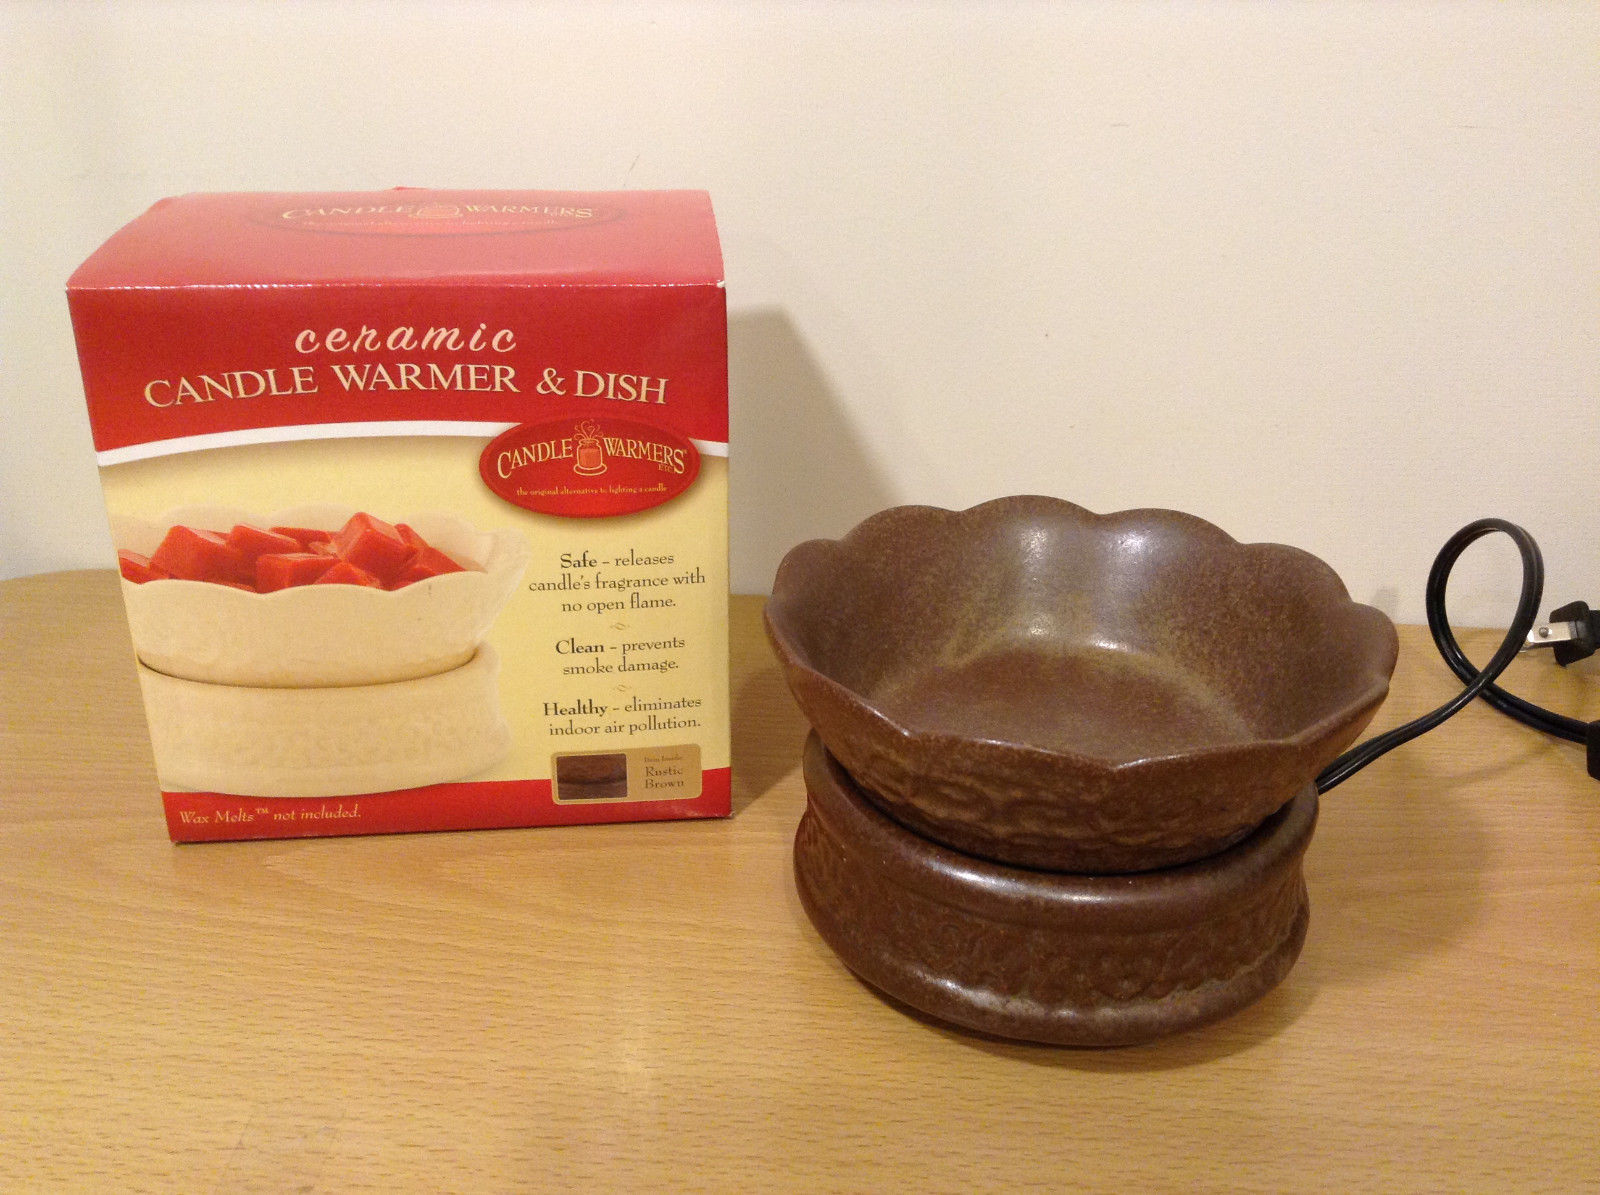 New in box Ceramic Rustic Brown Candle Fragrance Wax Warmer with Dish